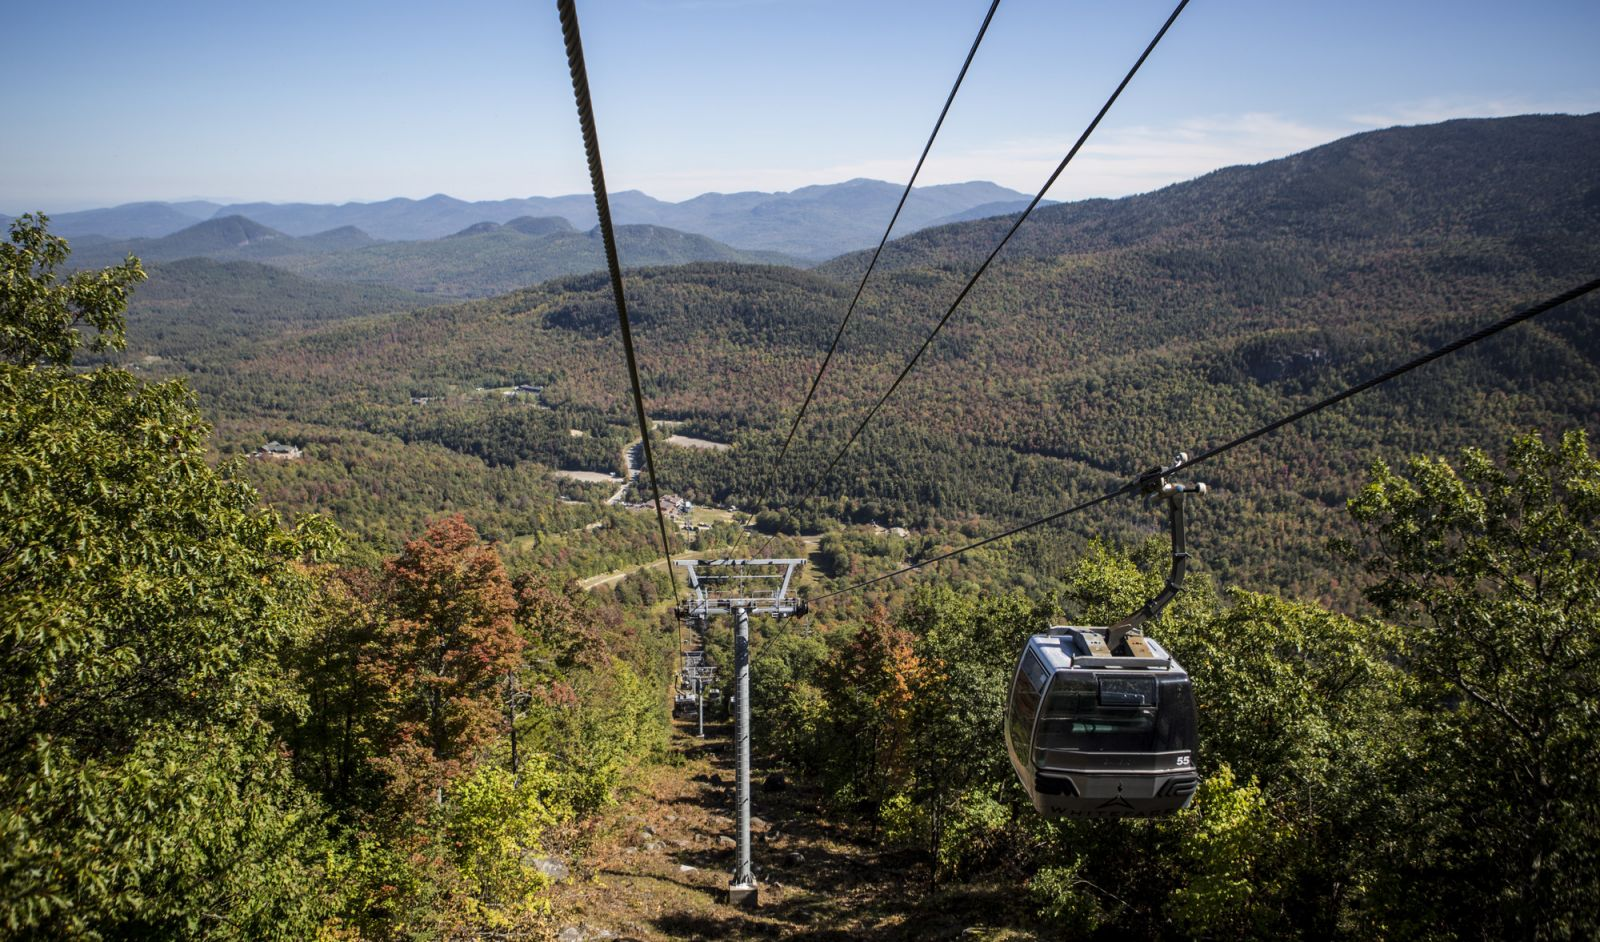 Sit back and enjoy the gondola ride to the summit of Little Whiteface.